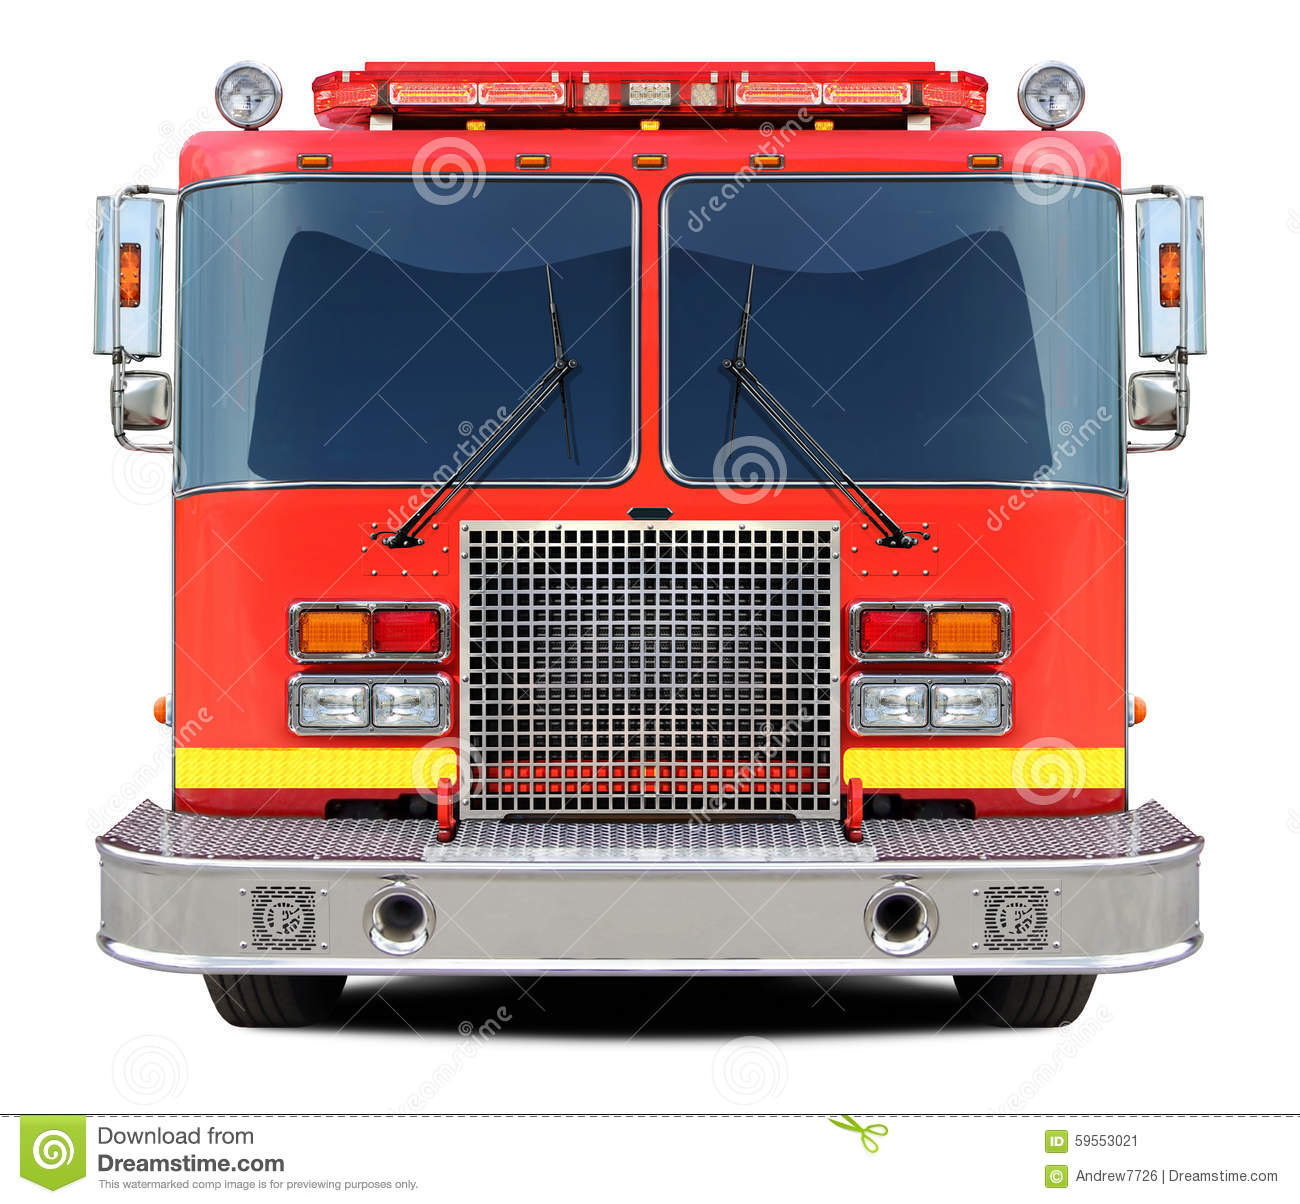 Fire truck front view.